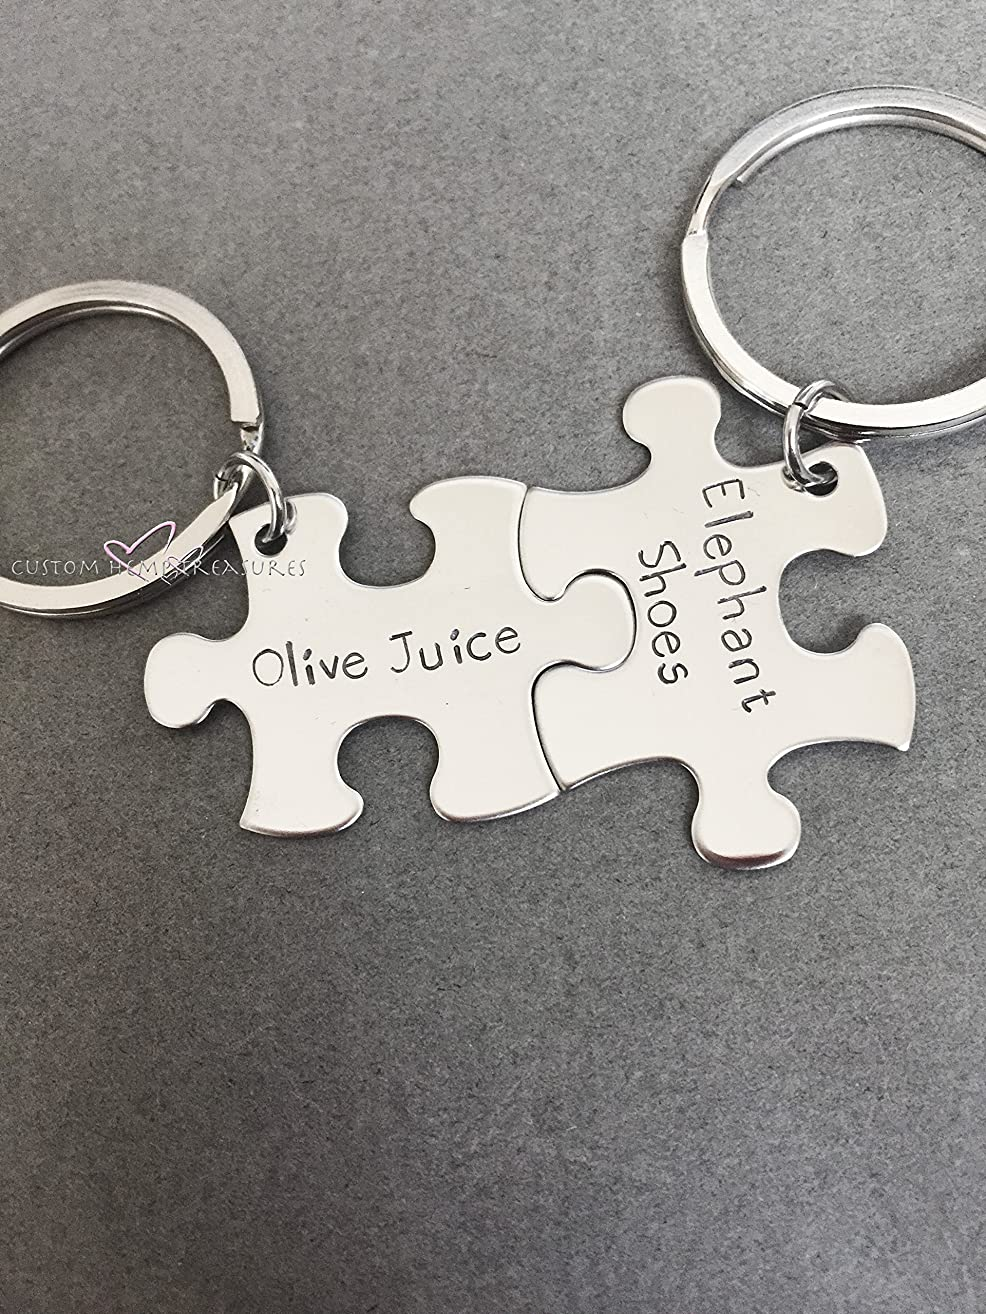 Olive Juice Elephant Shoes, Couples Keychains, Couples Gift, Boyfriend Gift, Girlfriend Gift, Puzzle Piece Keychain Set, Steel Anniversary, Anniversary Gift, Stainless Steel Keychains, Couples Set